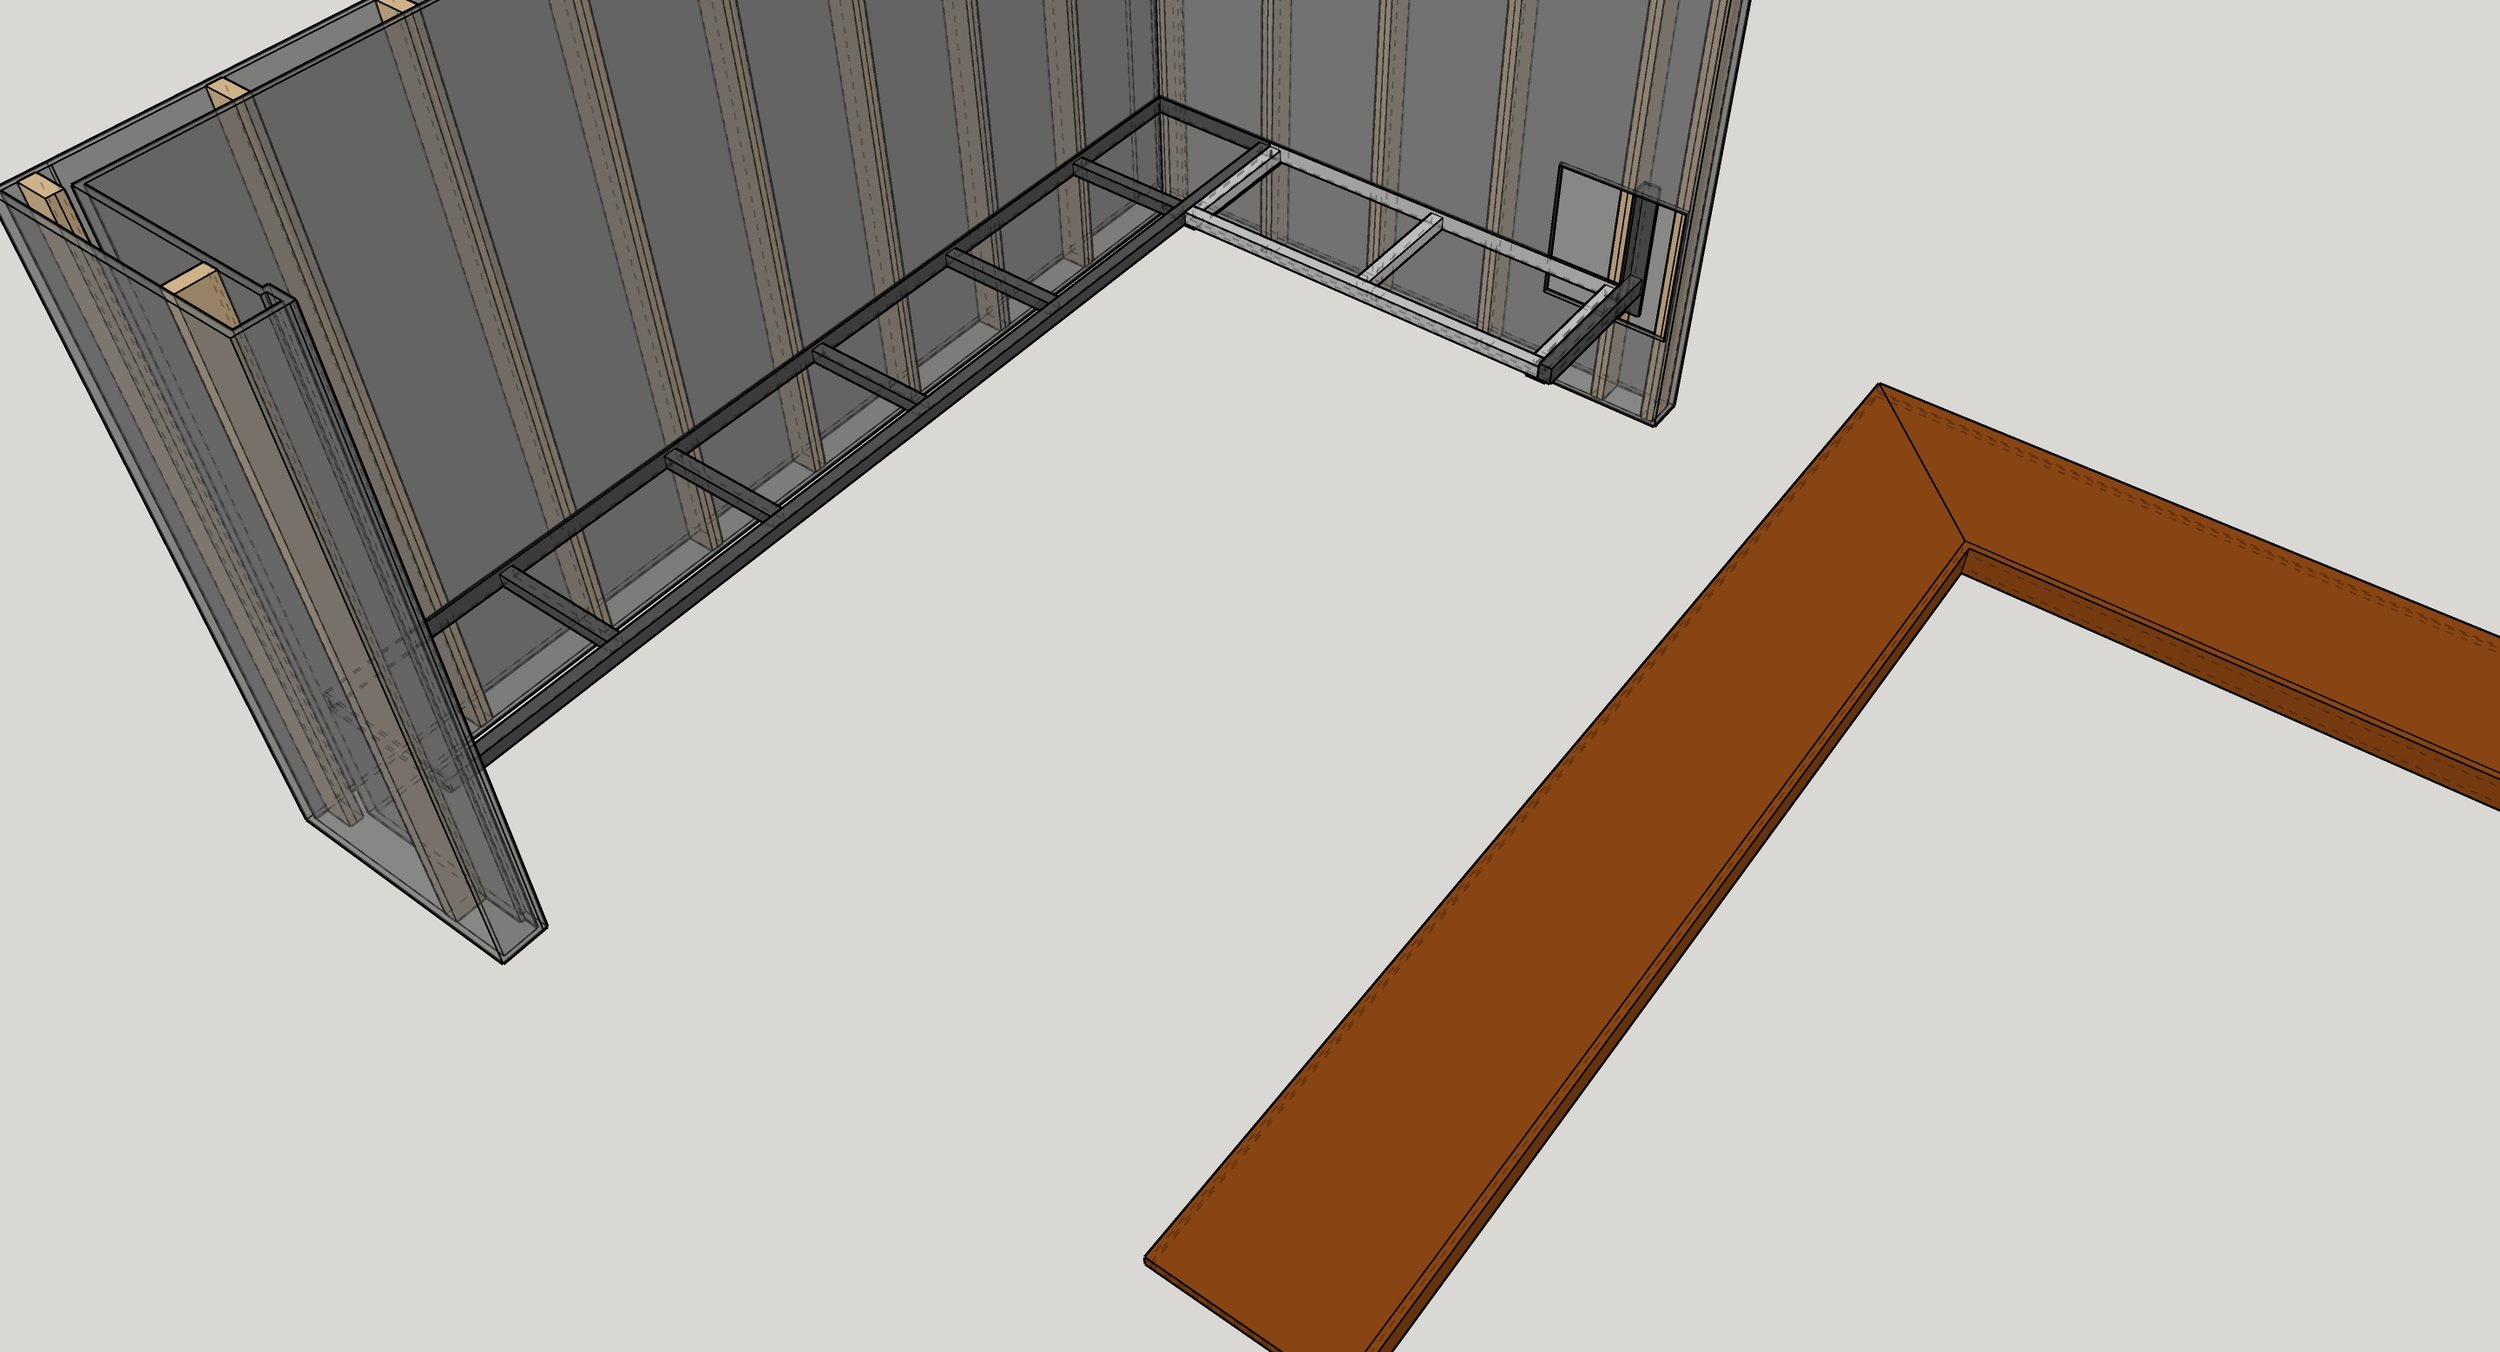 3D model of the floating bench showing steel support structure.